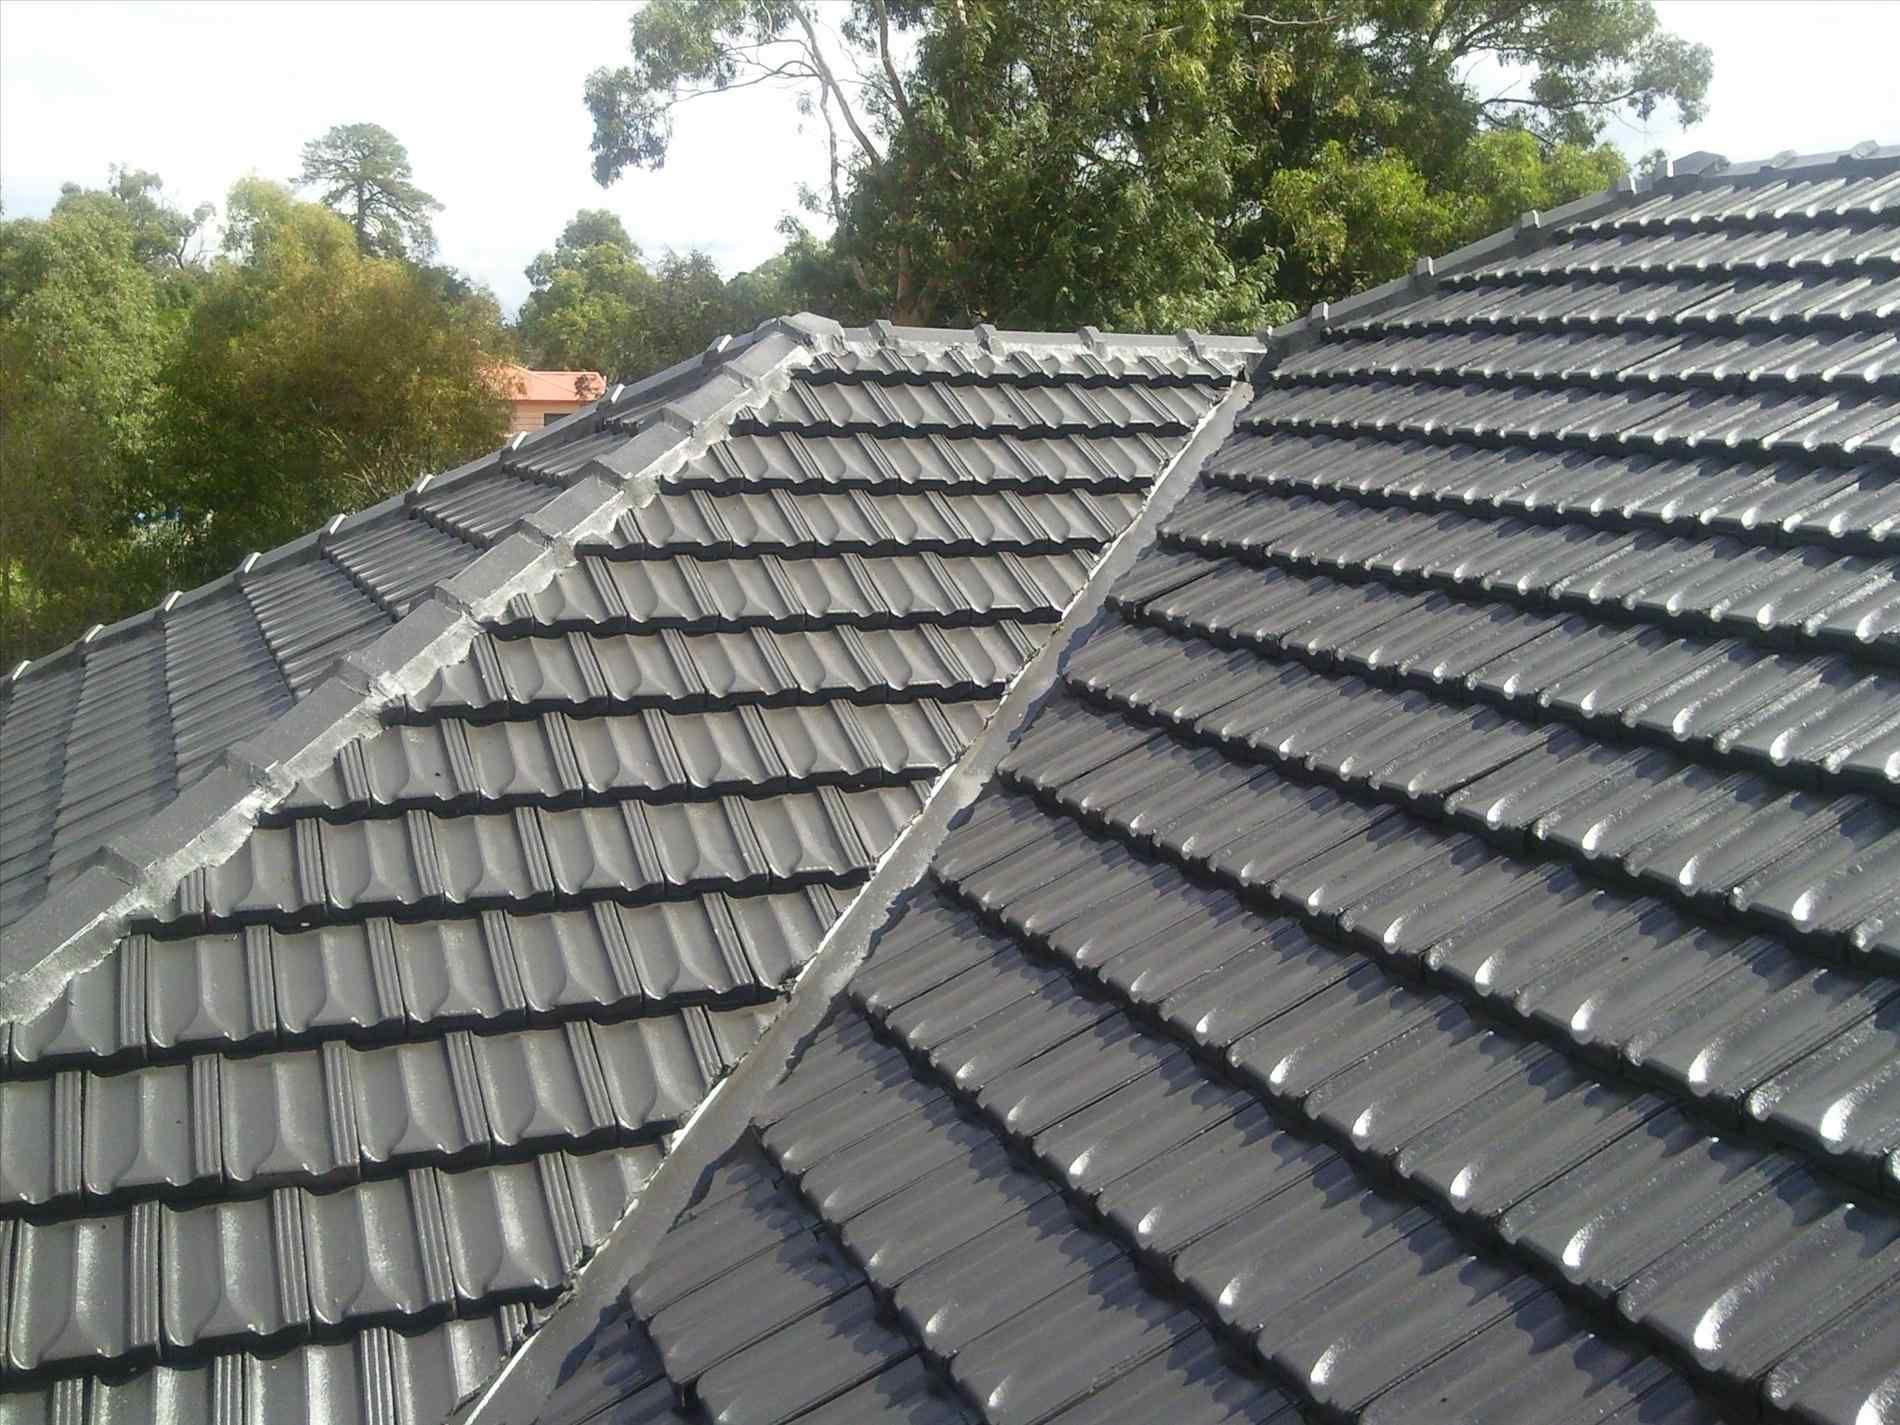 Consumer Reports Roof Shingles Home Roof Ideas Roof Restoration Roof Repair Roofing